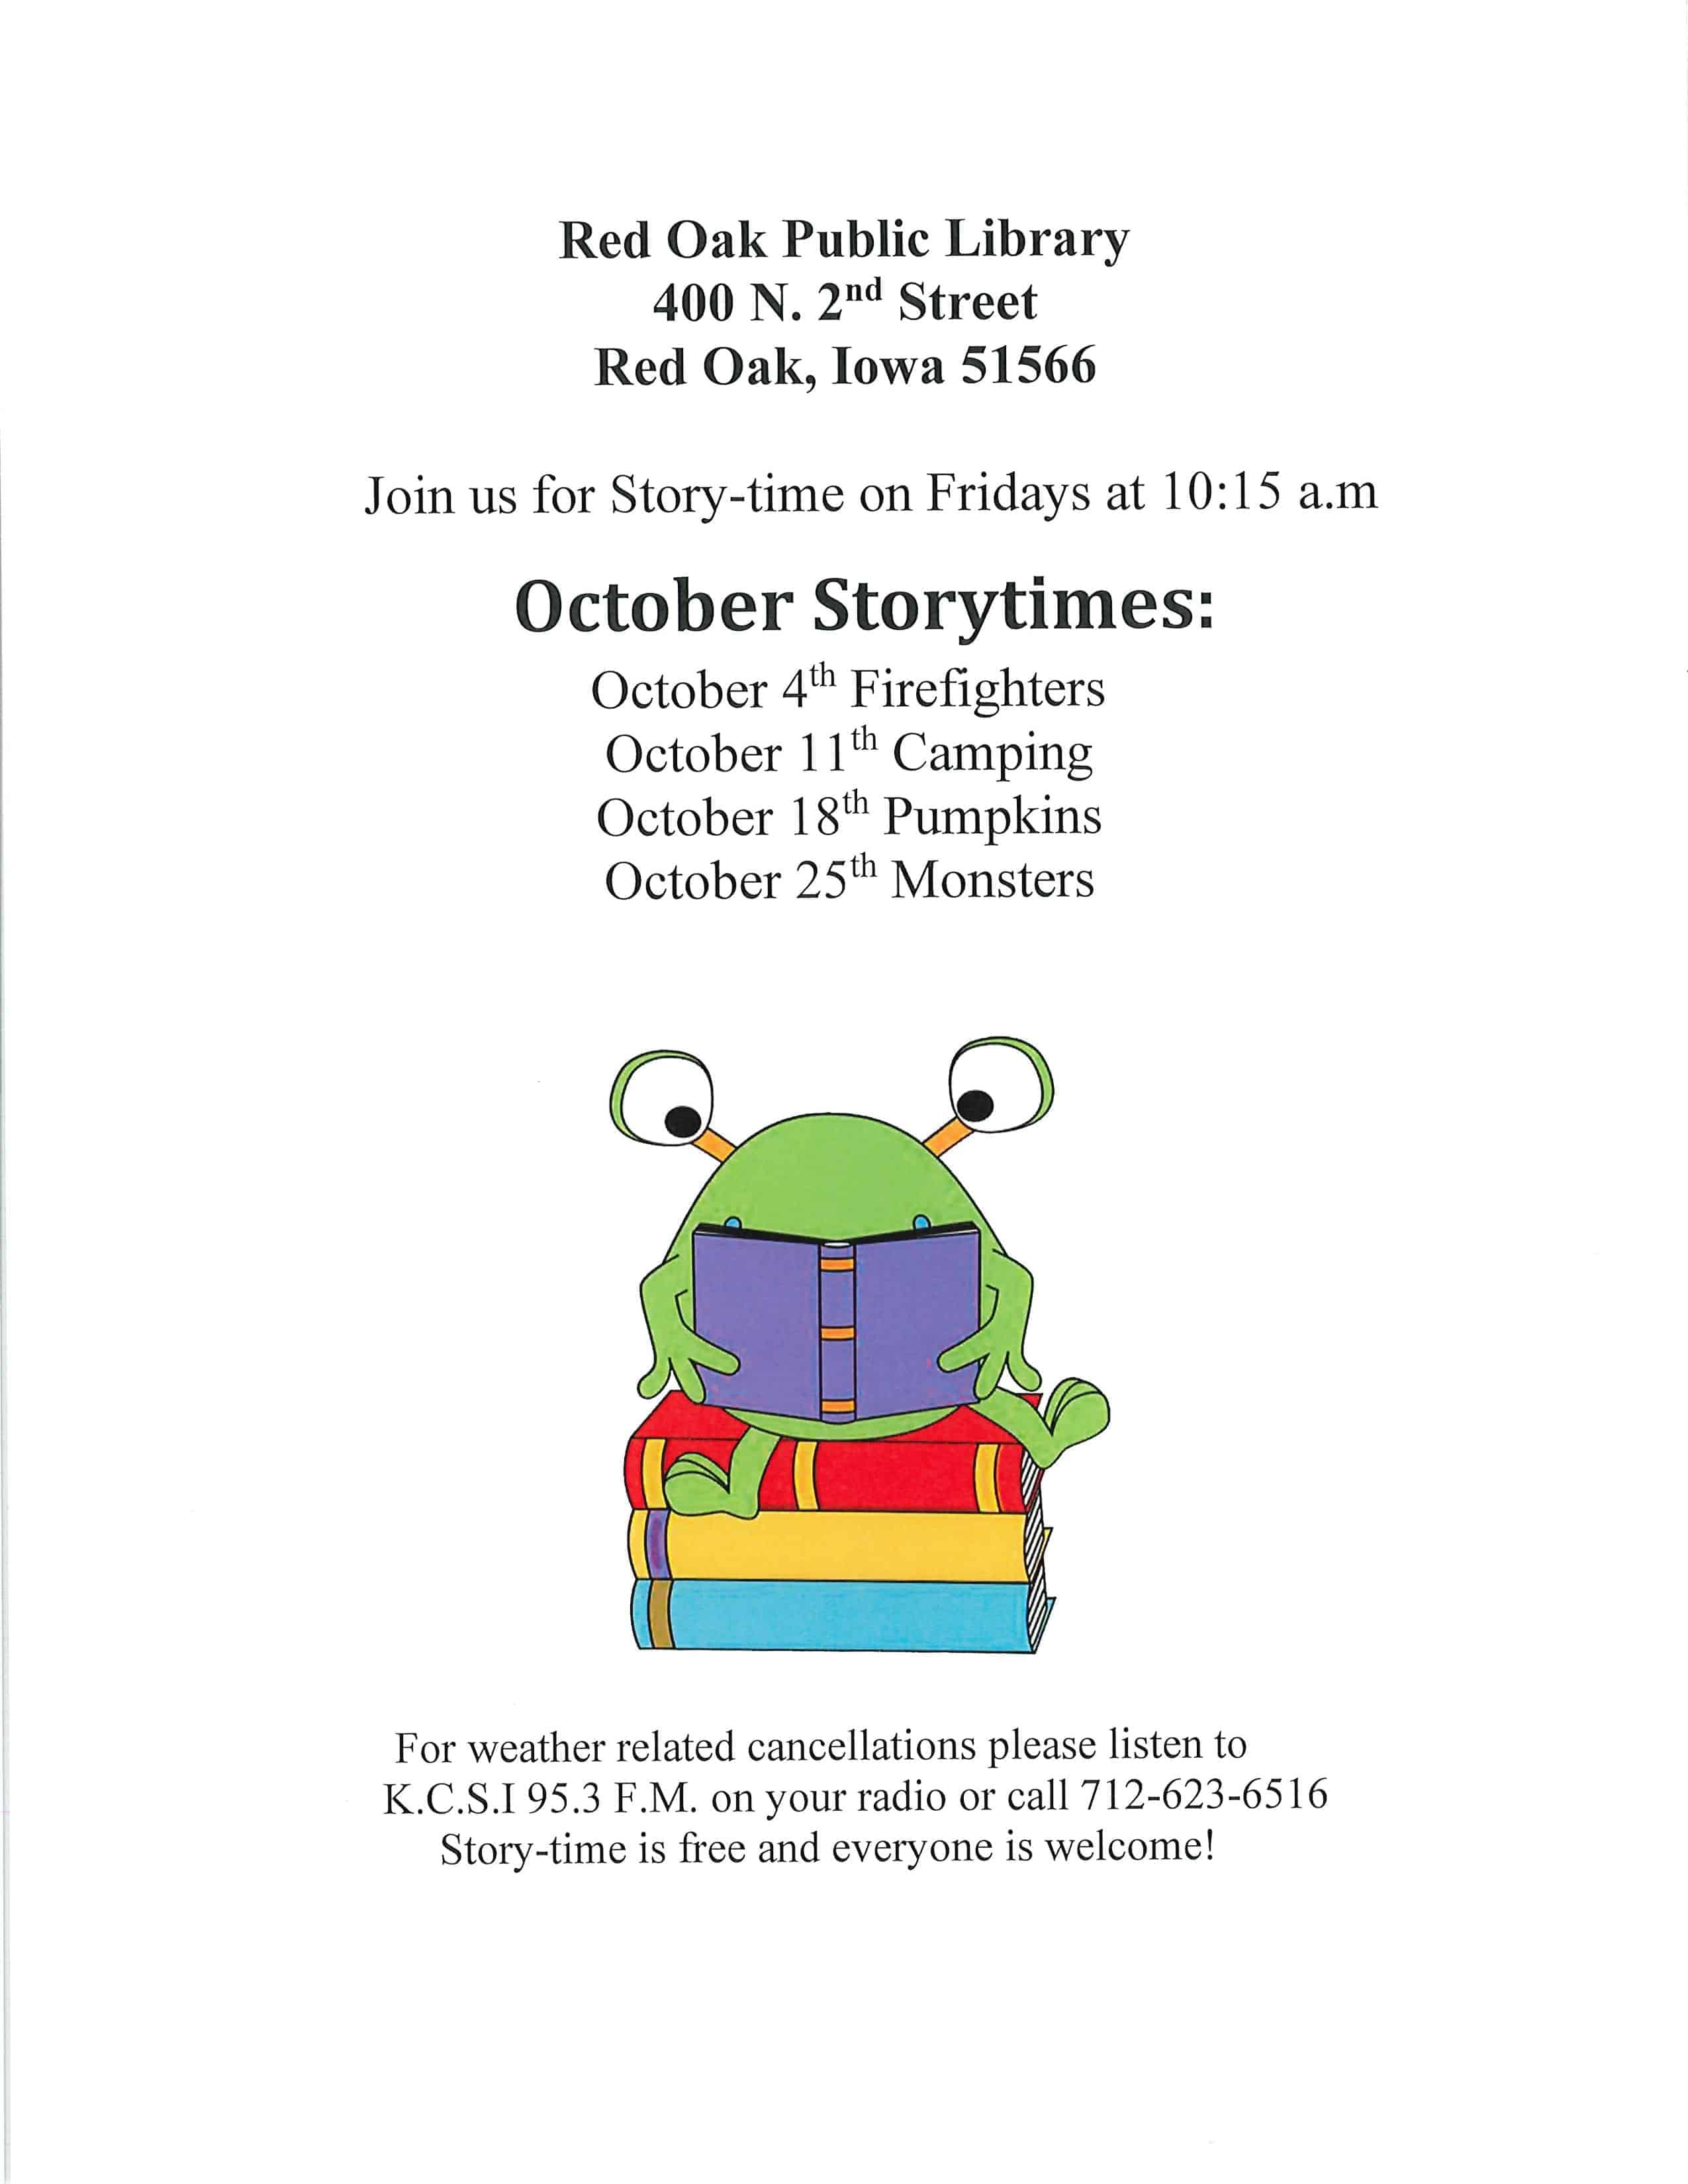 Red Oak Library Storytime October